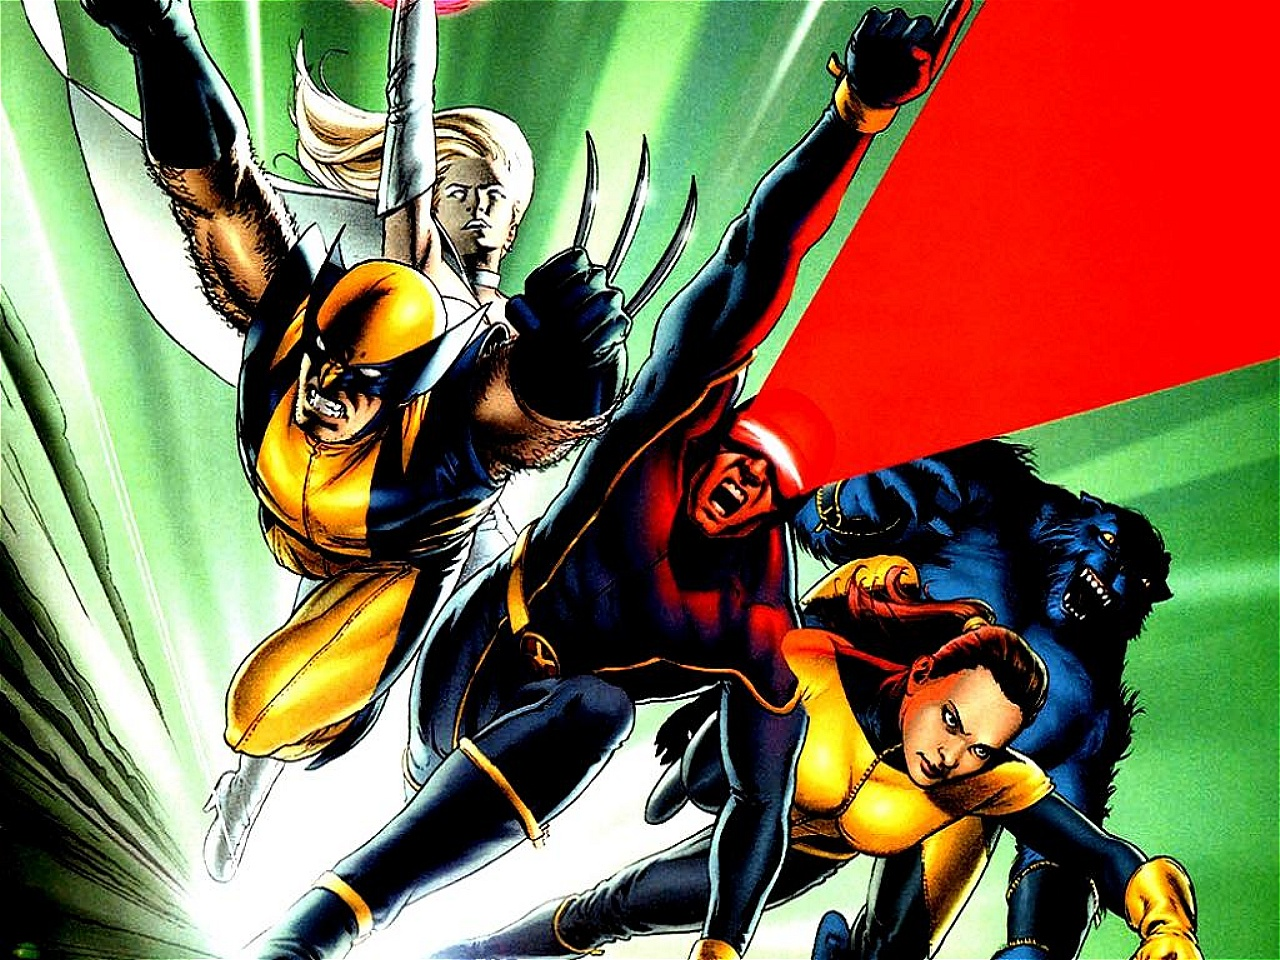 Astonishing X men 2 Wallpapers Pictures Photos and Backgrounds 1280x960